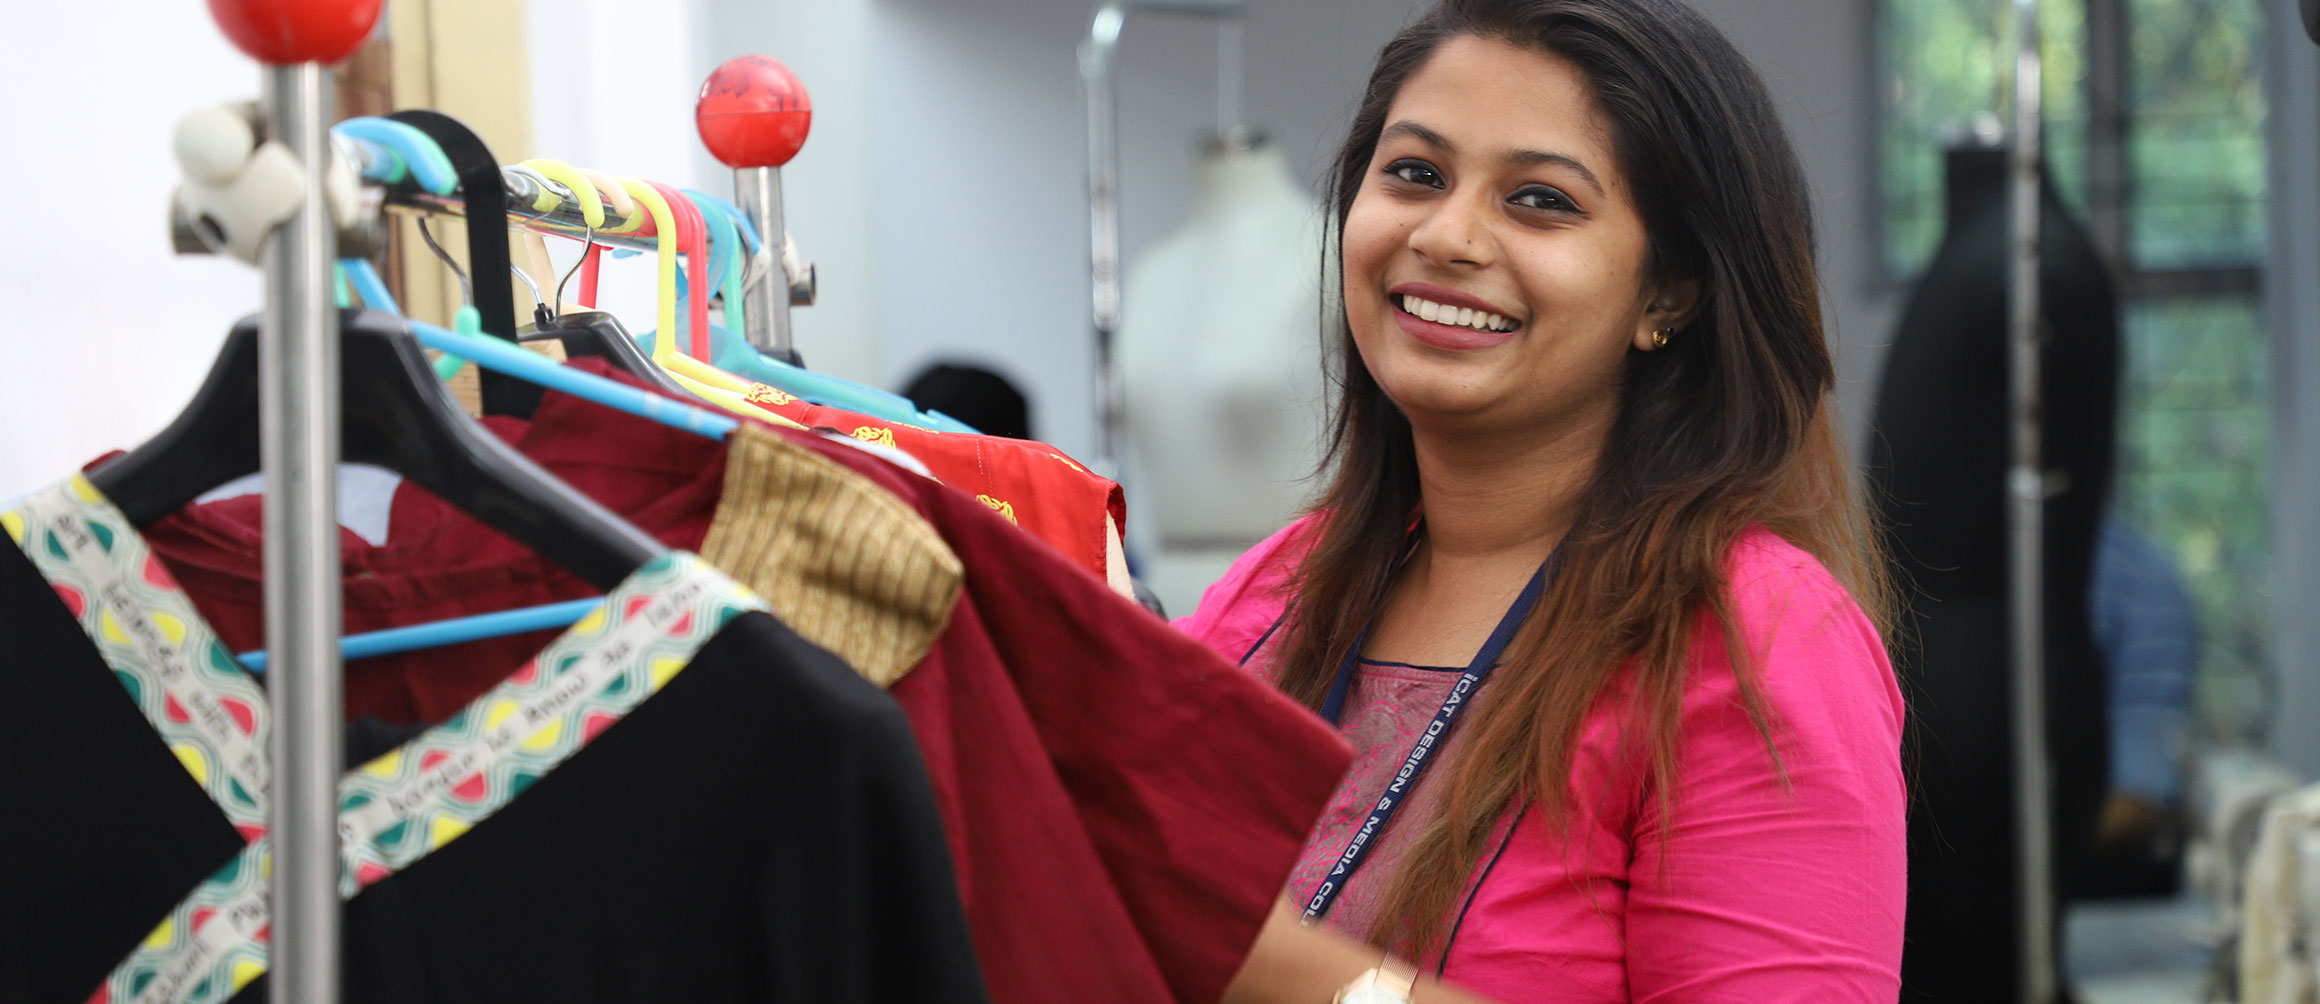 Top 10 Fashion Designing Courses in Chennai, Best Training 50